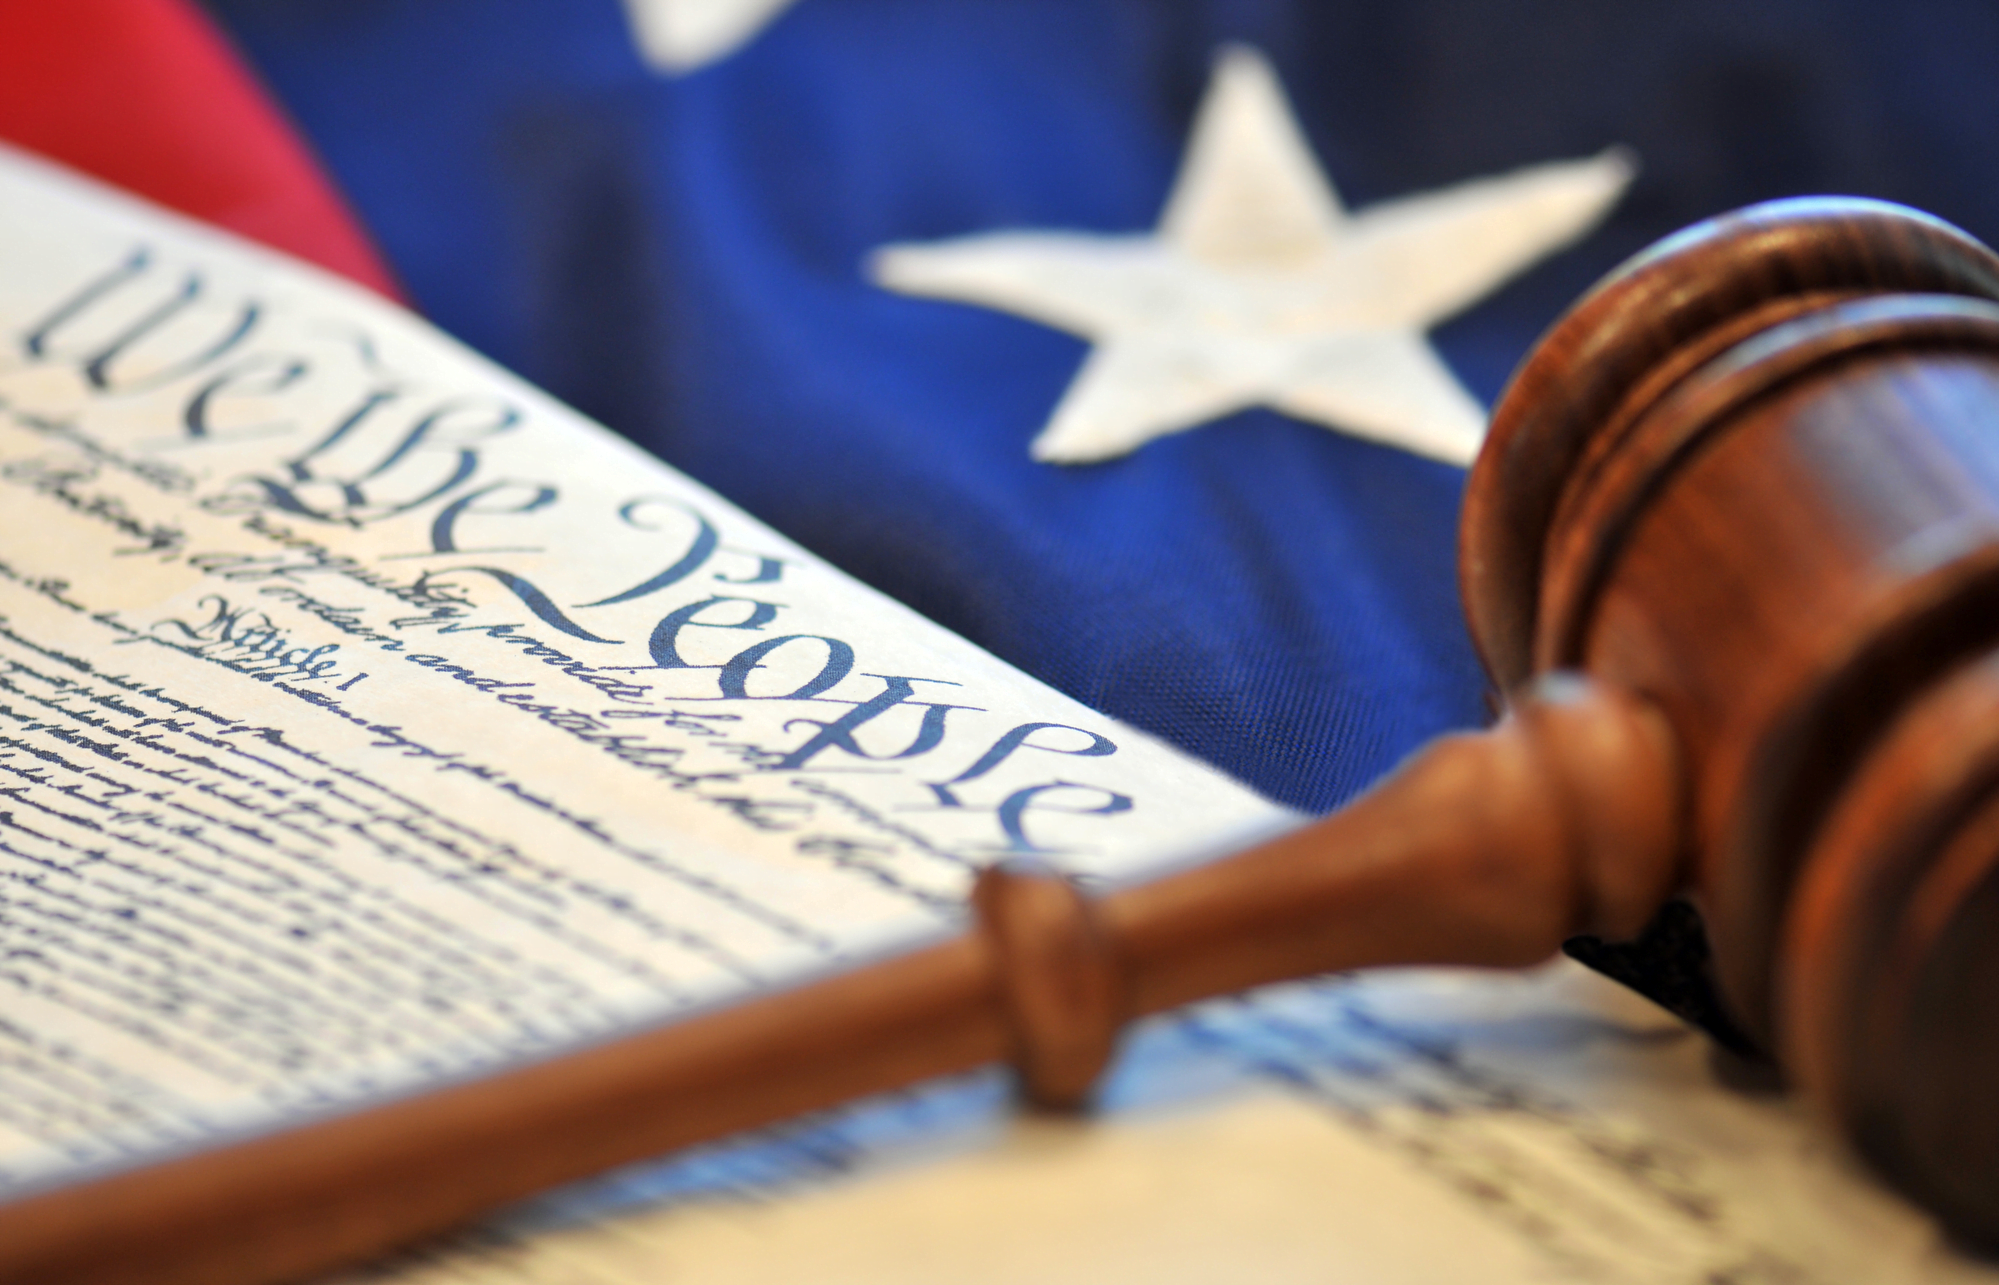 Gavel, US Constitution, and US Flag